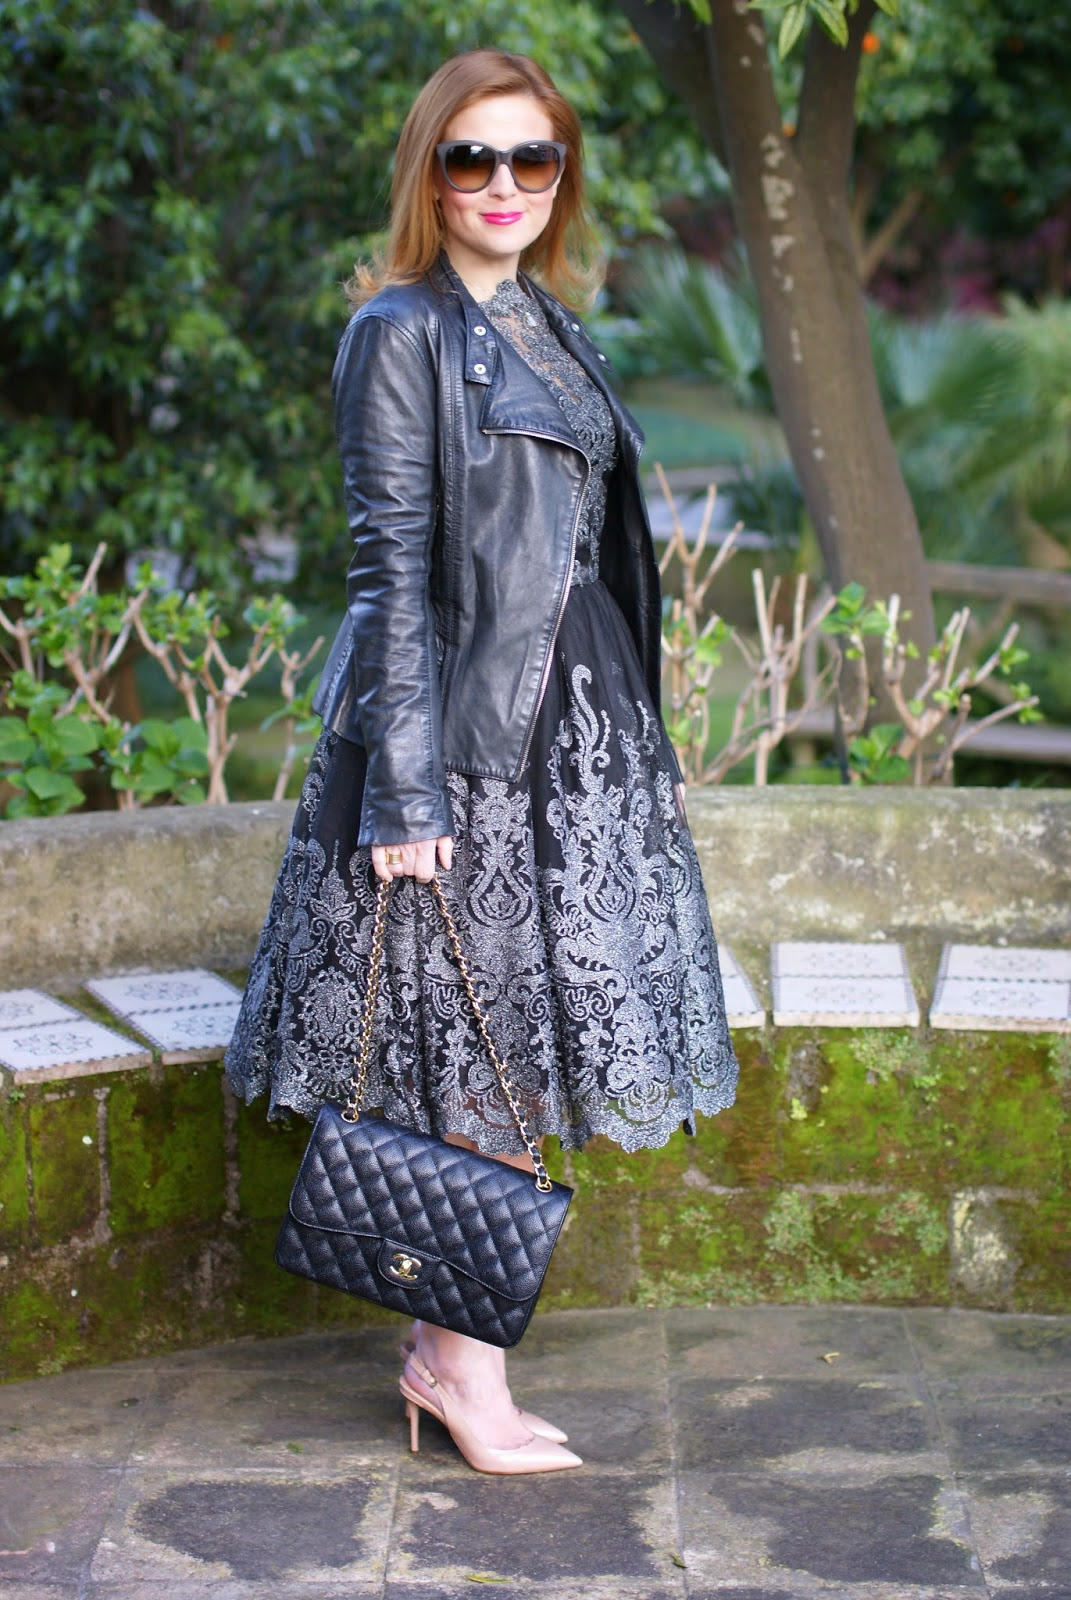 Cinderella style, Chi Chi London Lottie dress, Elisabetta Franchi giacca pelle, Chi Chi London, nude pumps, leather jacket on elegant dress, Le Silla, Fashion and Cookies, fashion blogger, fashion blog, best fashion bloggers